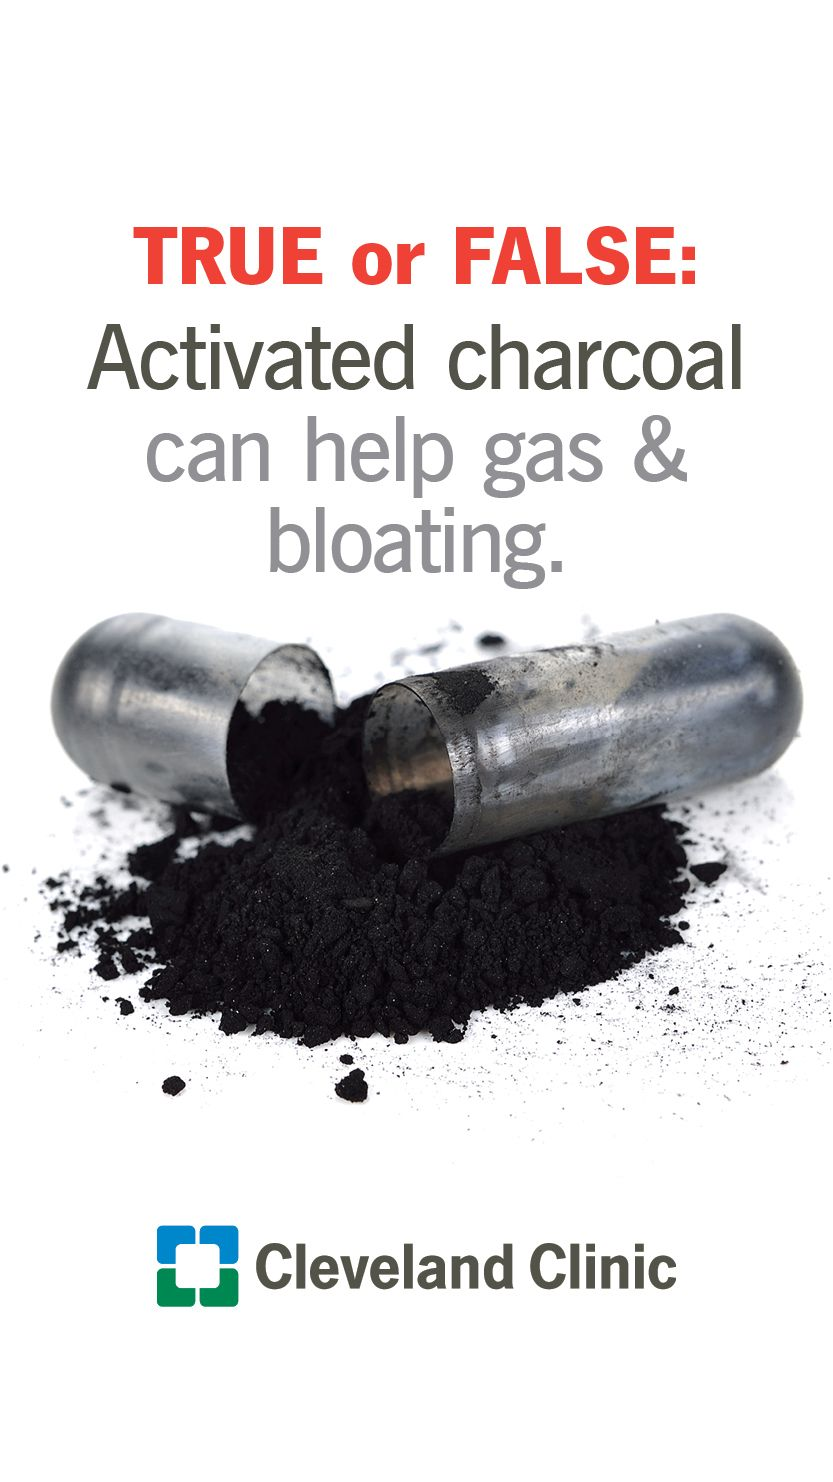 is it safe to take charcoal pills for gas and bloating